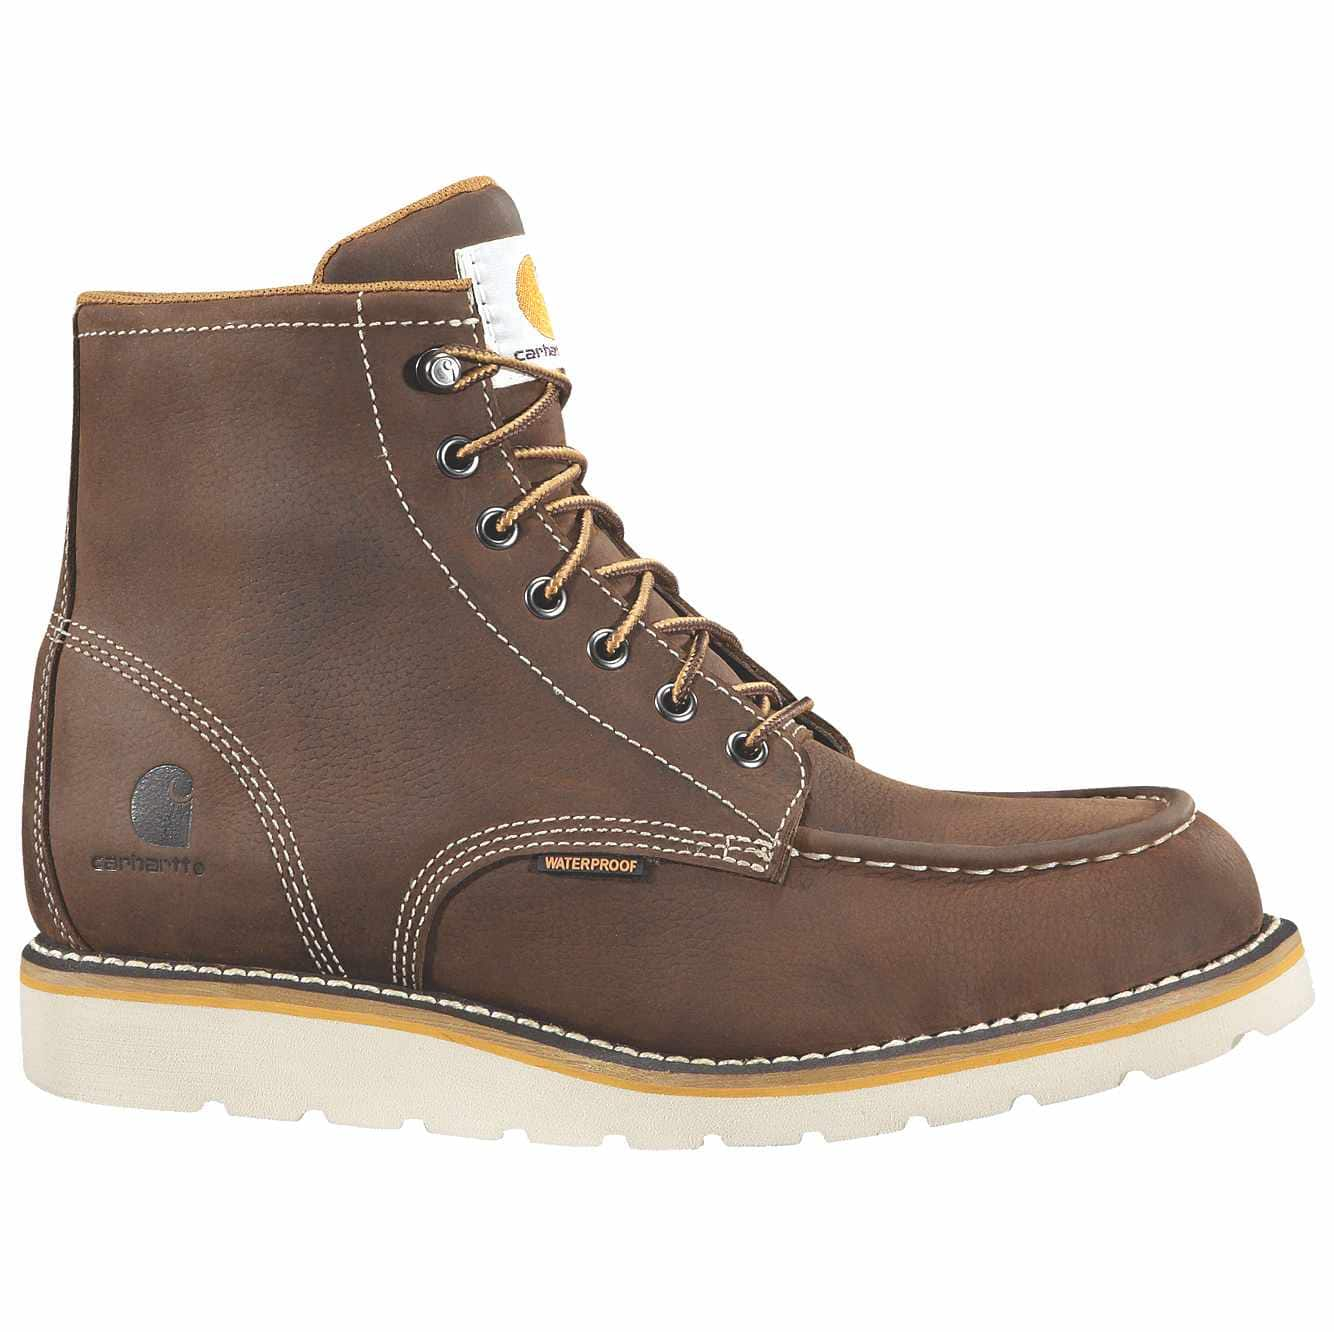 959608fab9089a Men's 6-Inch Non-Safety Toe Wedge Boot CMW6095 | Carhartt